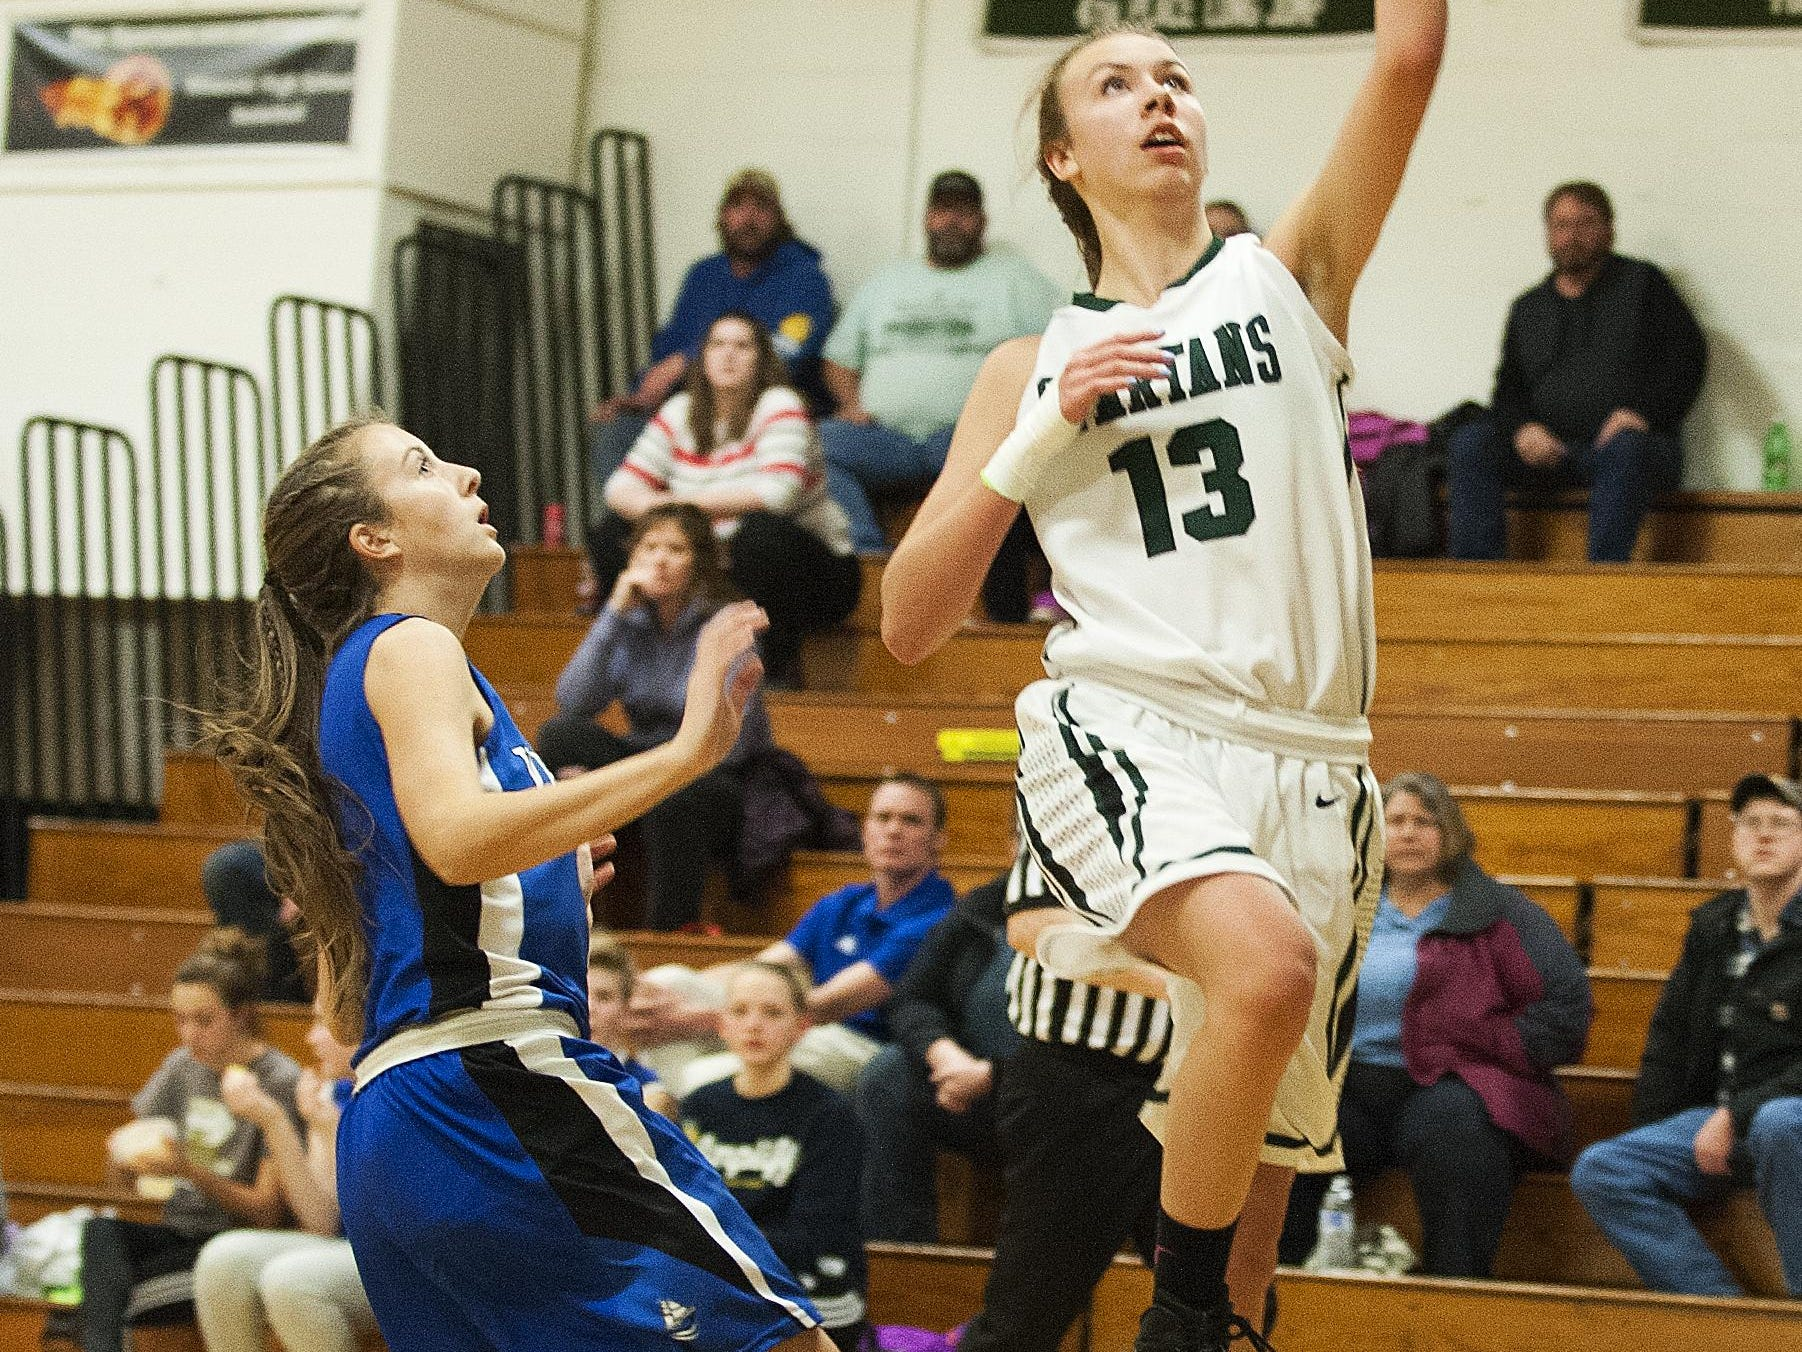 Winooski's Riley Corrigan (13) leaps for a lay-up during the girls basketball game between Vergennes and Winooski at Winooski High School on Wednesday.